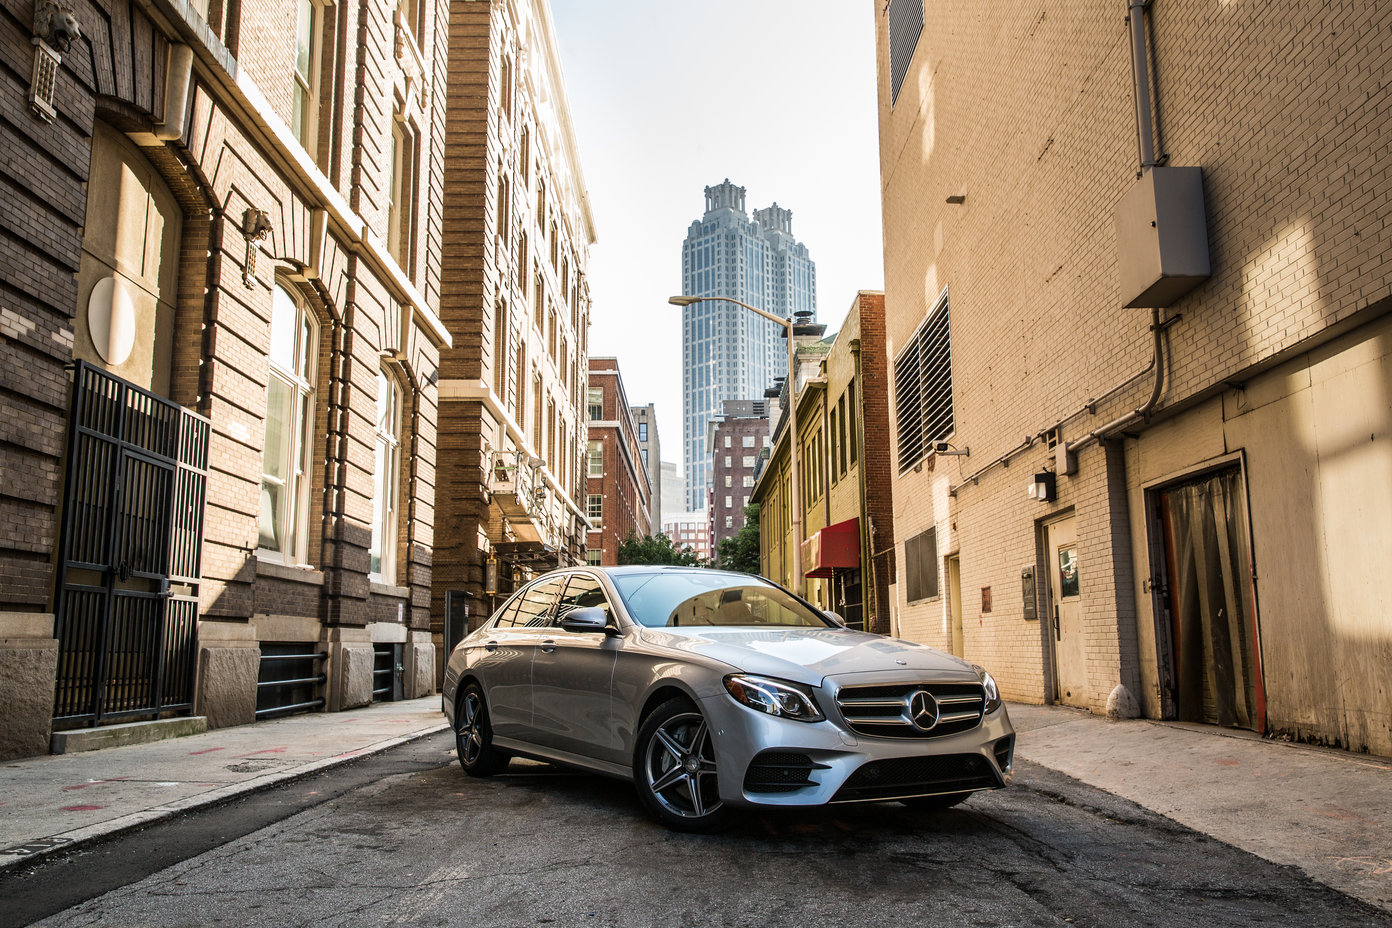 Mercedes benz of princeton the redesigned 2017 mercedes for Mercedes benz princeton